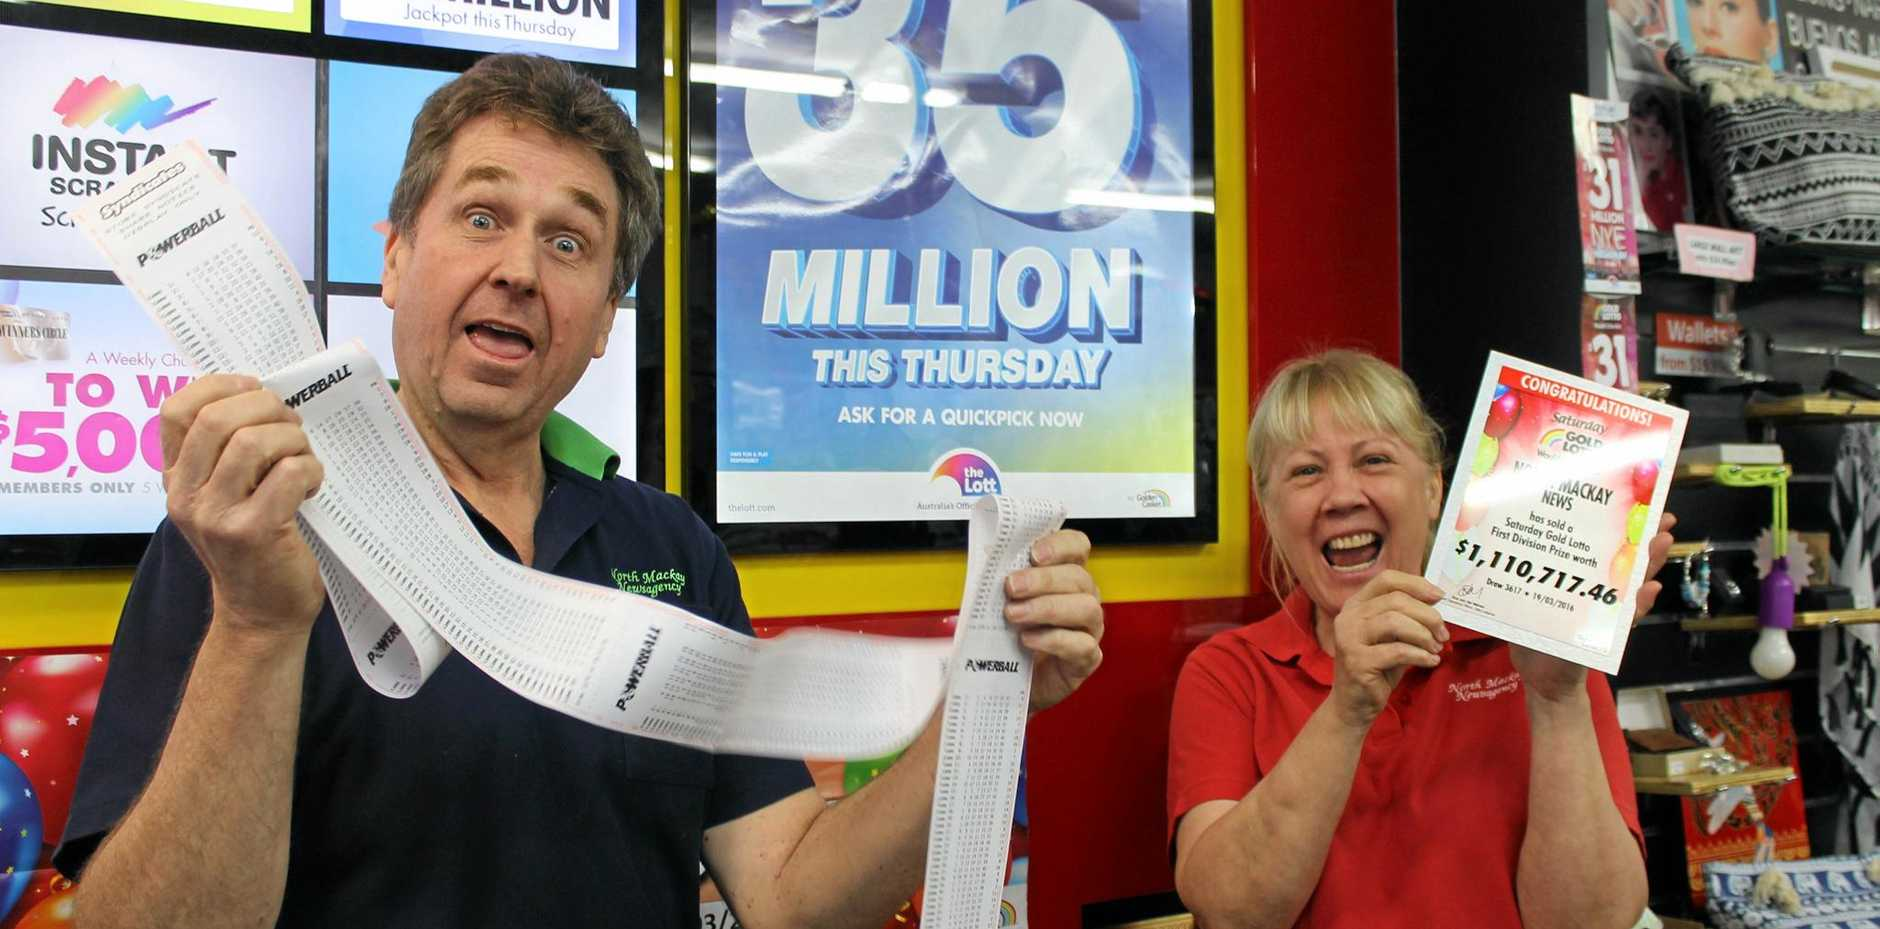 LUCKY: North Mackay News co-owners Mark Faulkner and Mariann Hartup say lotto sales have doubled ahead of this week's massive Lotto jackpots.